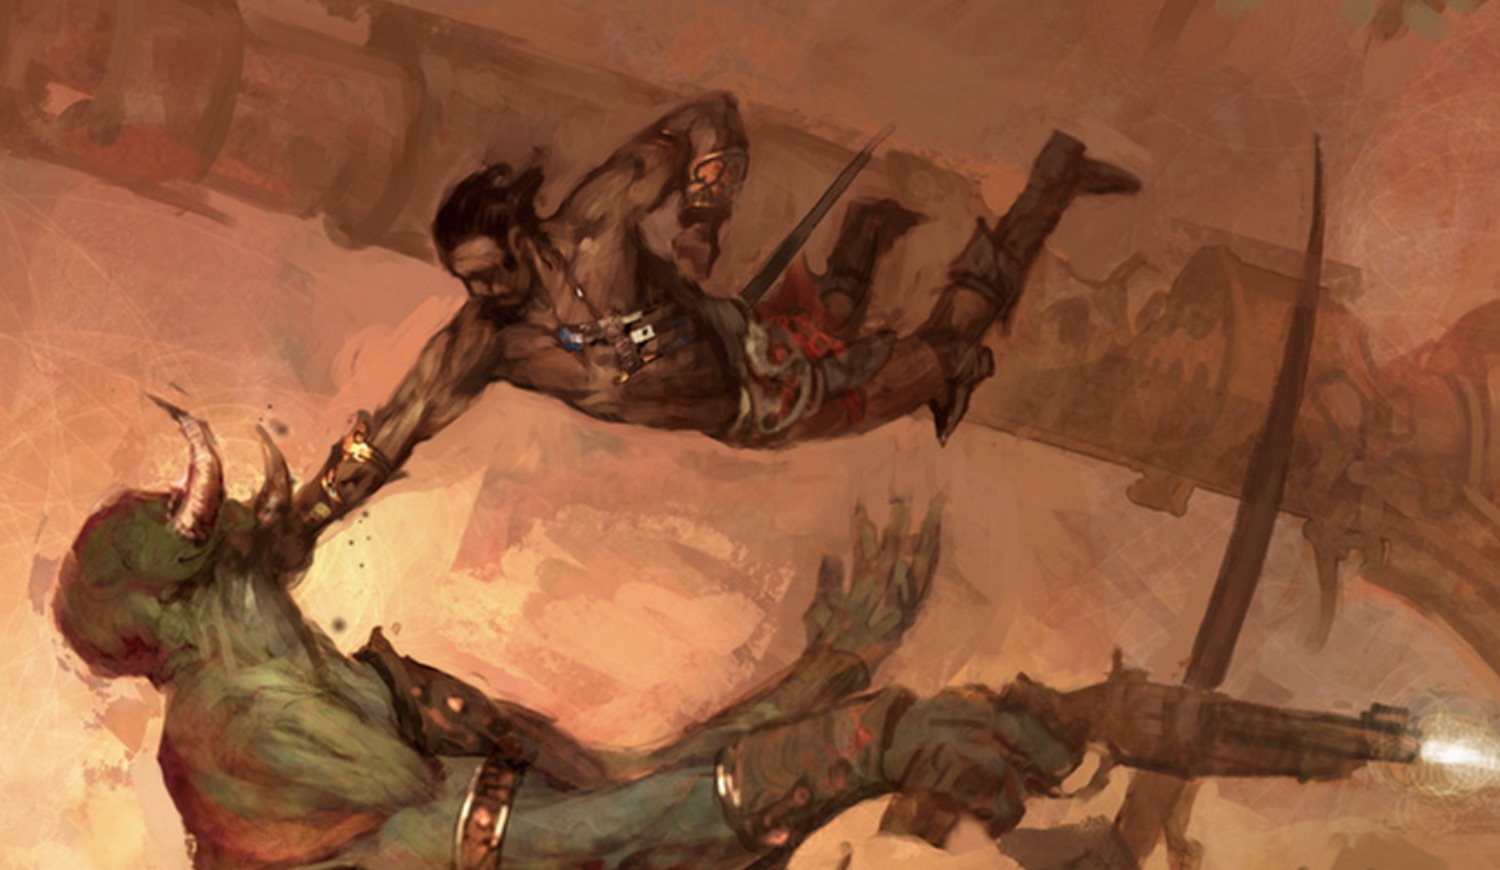 Thanks to Vance Kovacs for One of the All-Time Great Depictions of John Carter of Mars